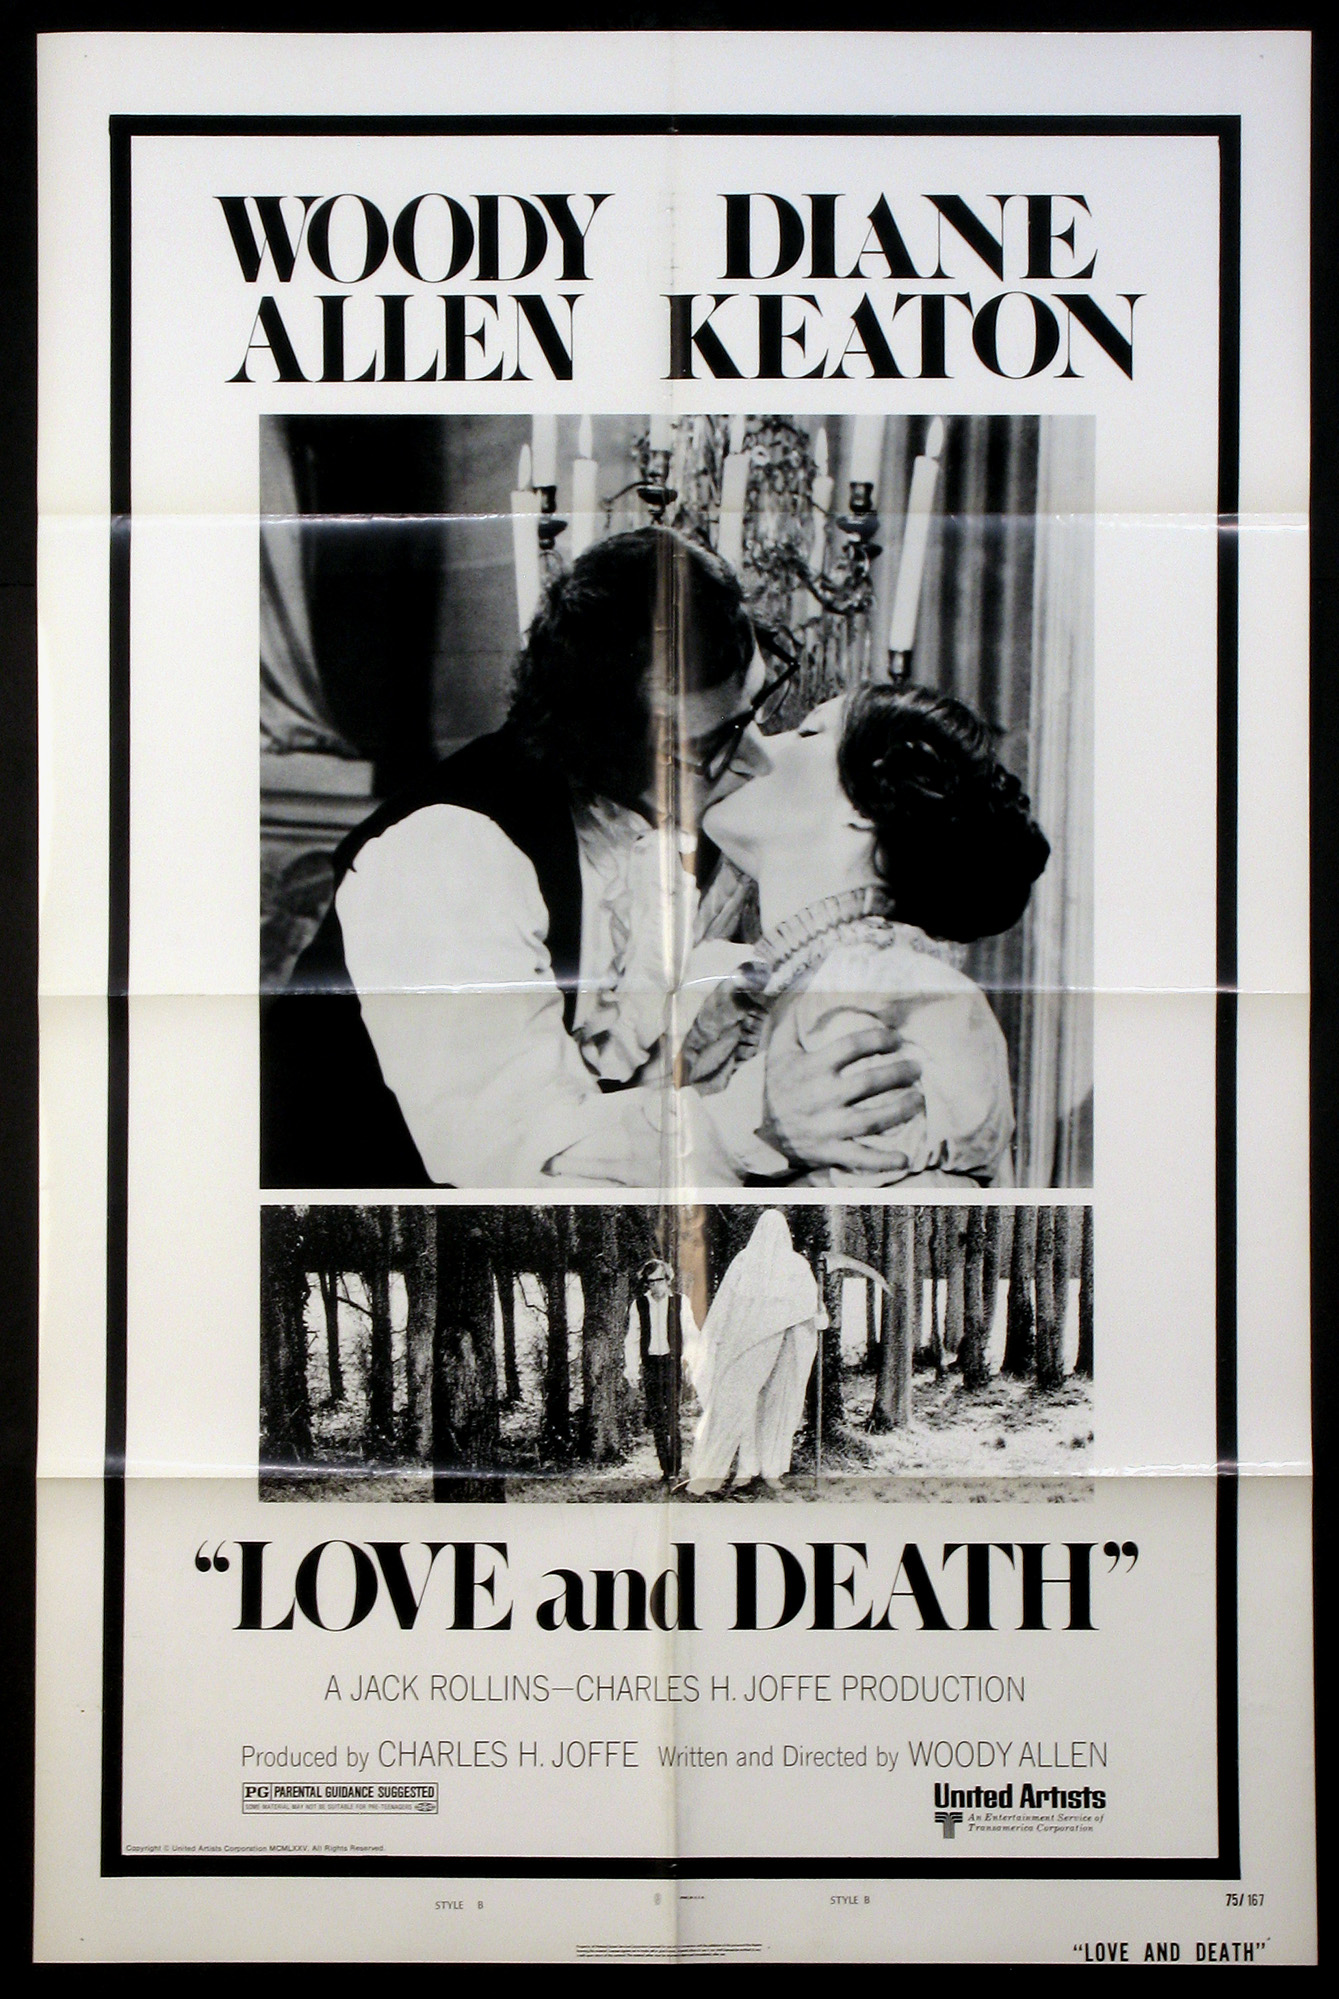 LOVE AND DEATH @ FilmPosters.com